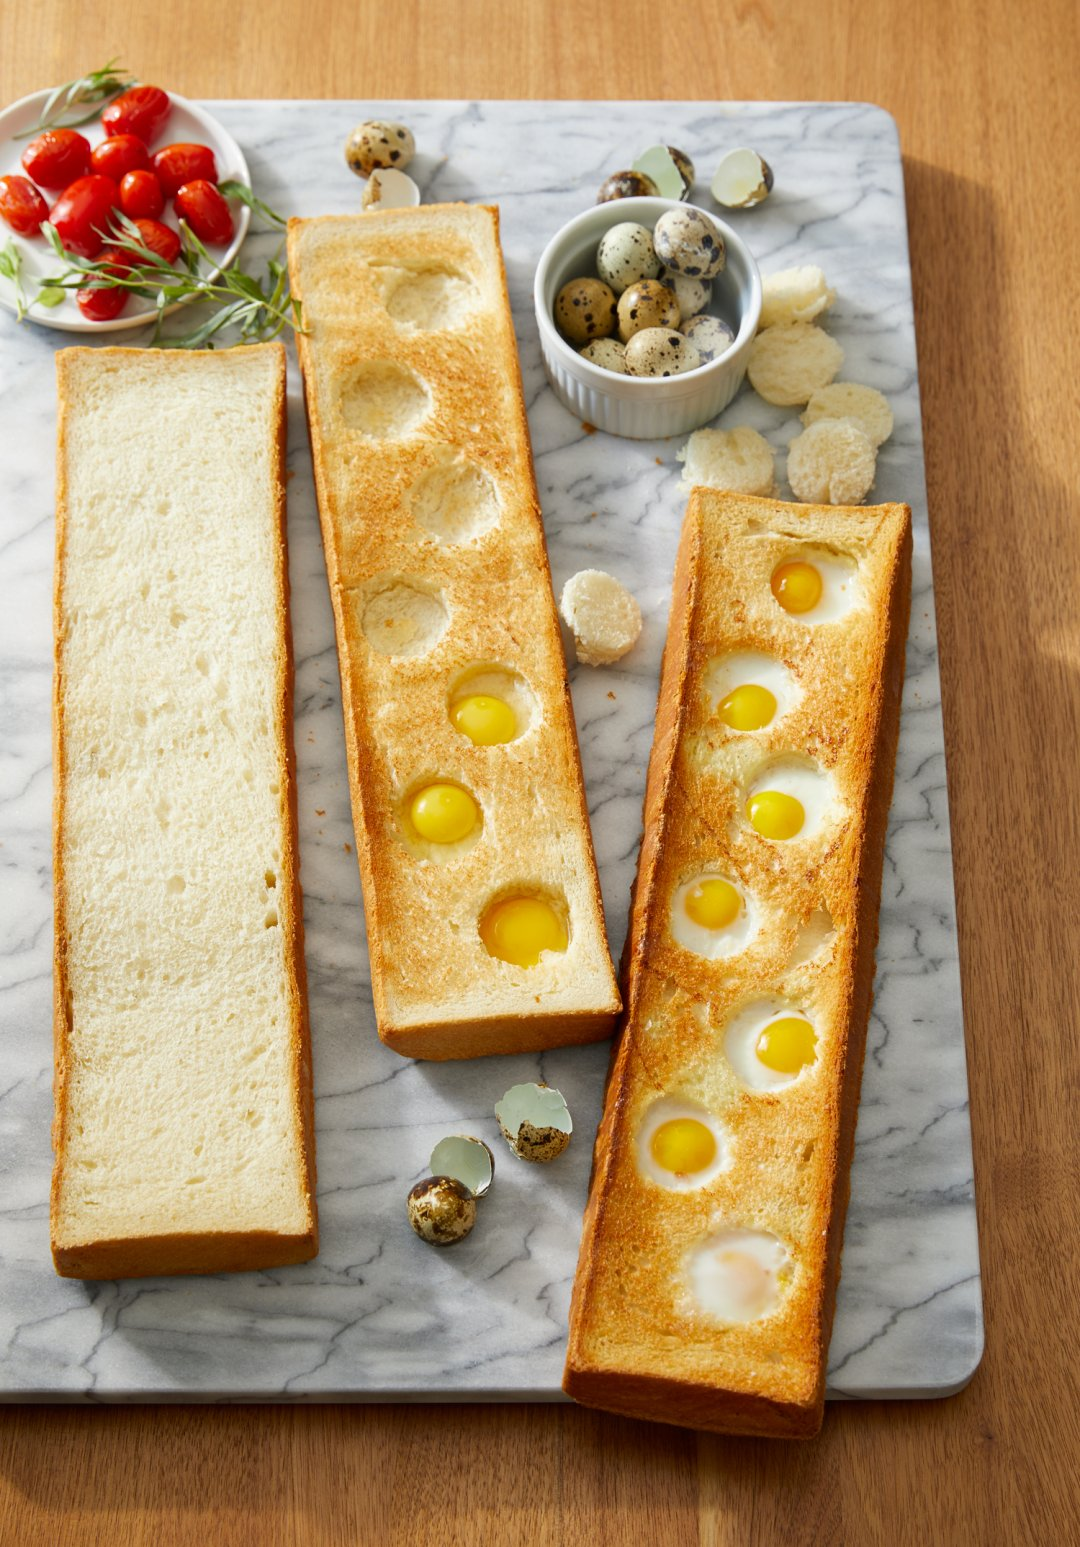 Three halved bread loaves punctured with shallow holes filled with quail eggs laid out on a marble board